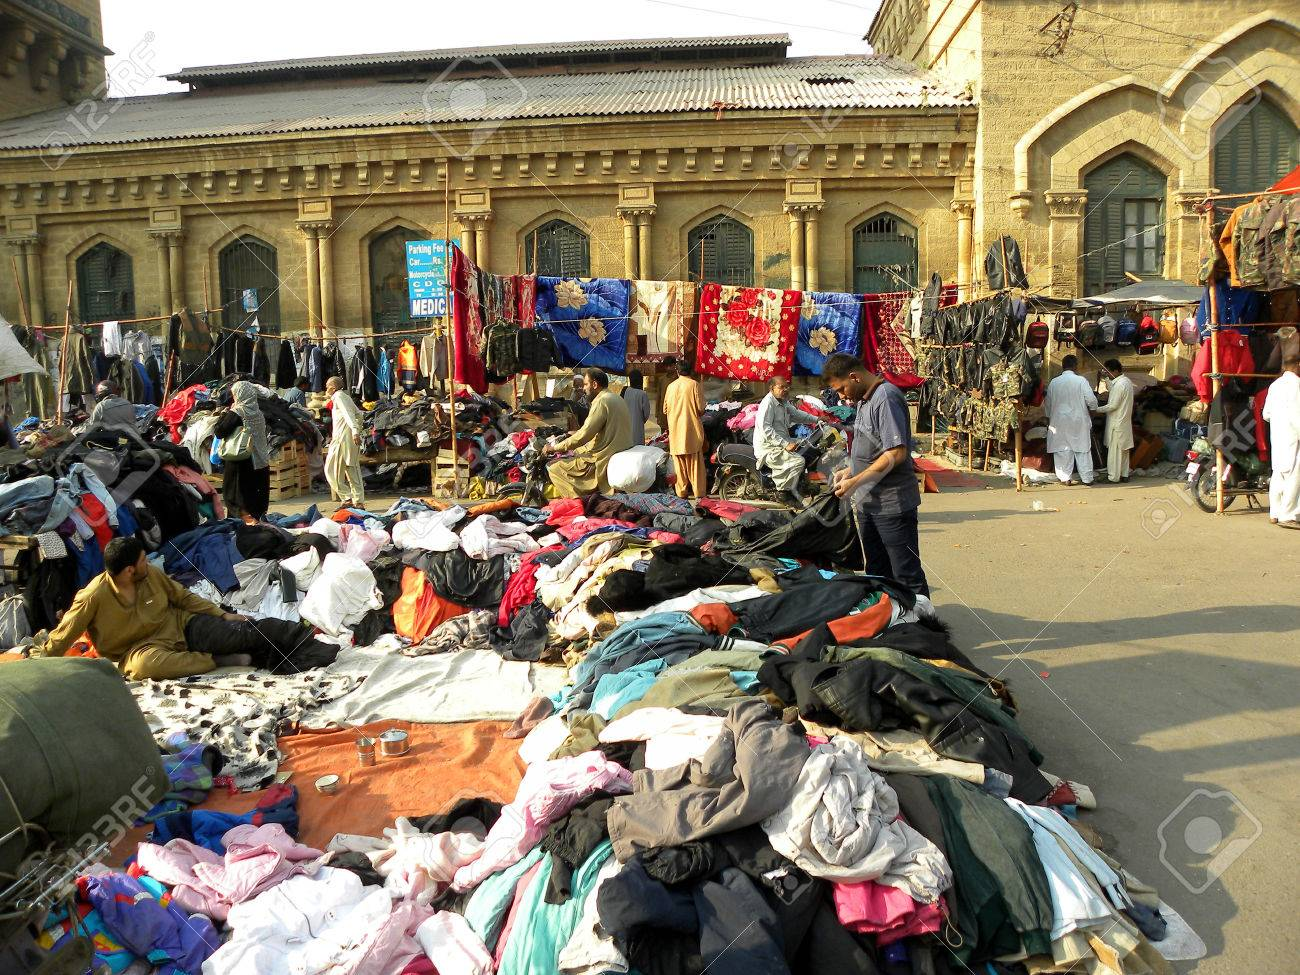 Karachi Pakistan_peoplee Towards Markets To Buy Warm Cloths Blankets In  Cheap Prices Here On Monday Karachi